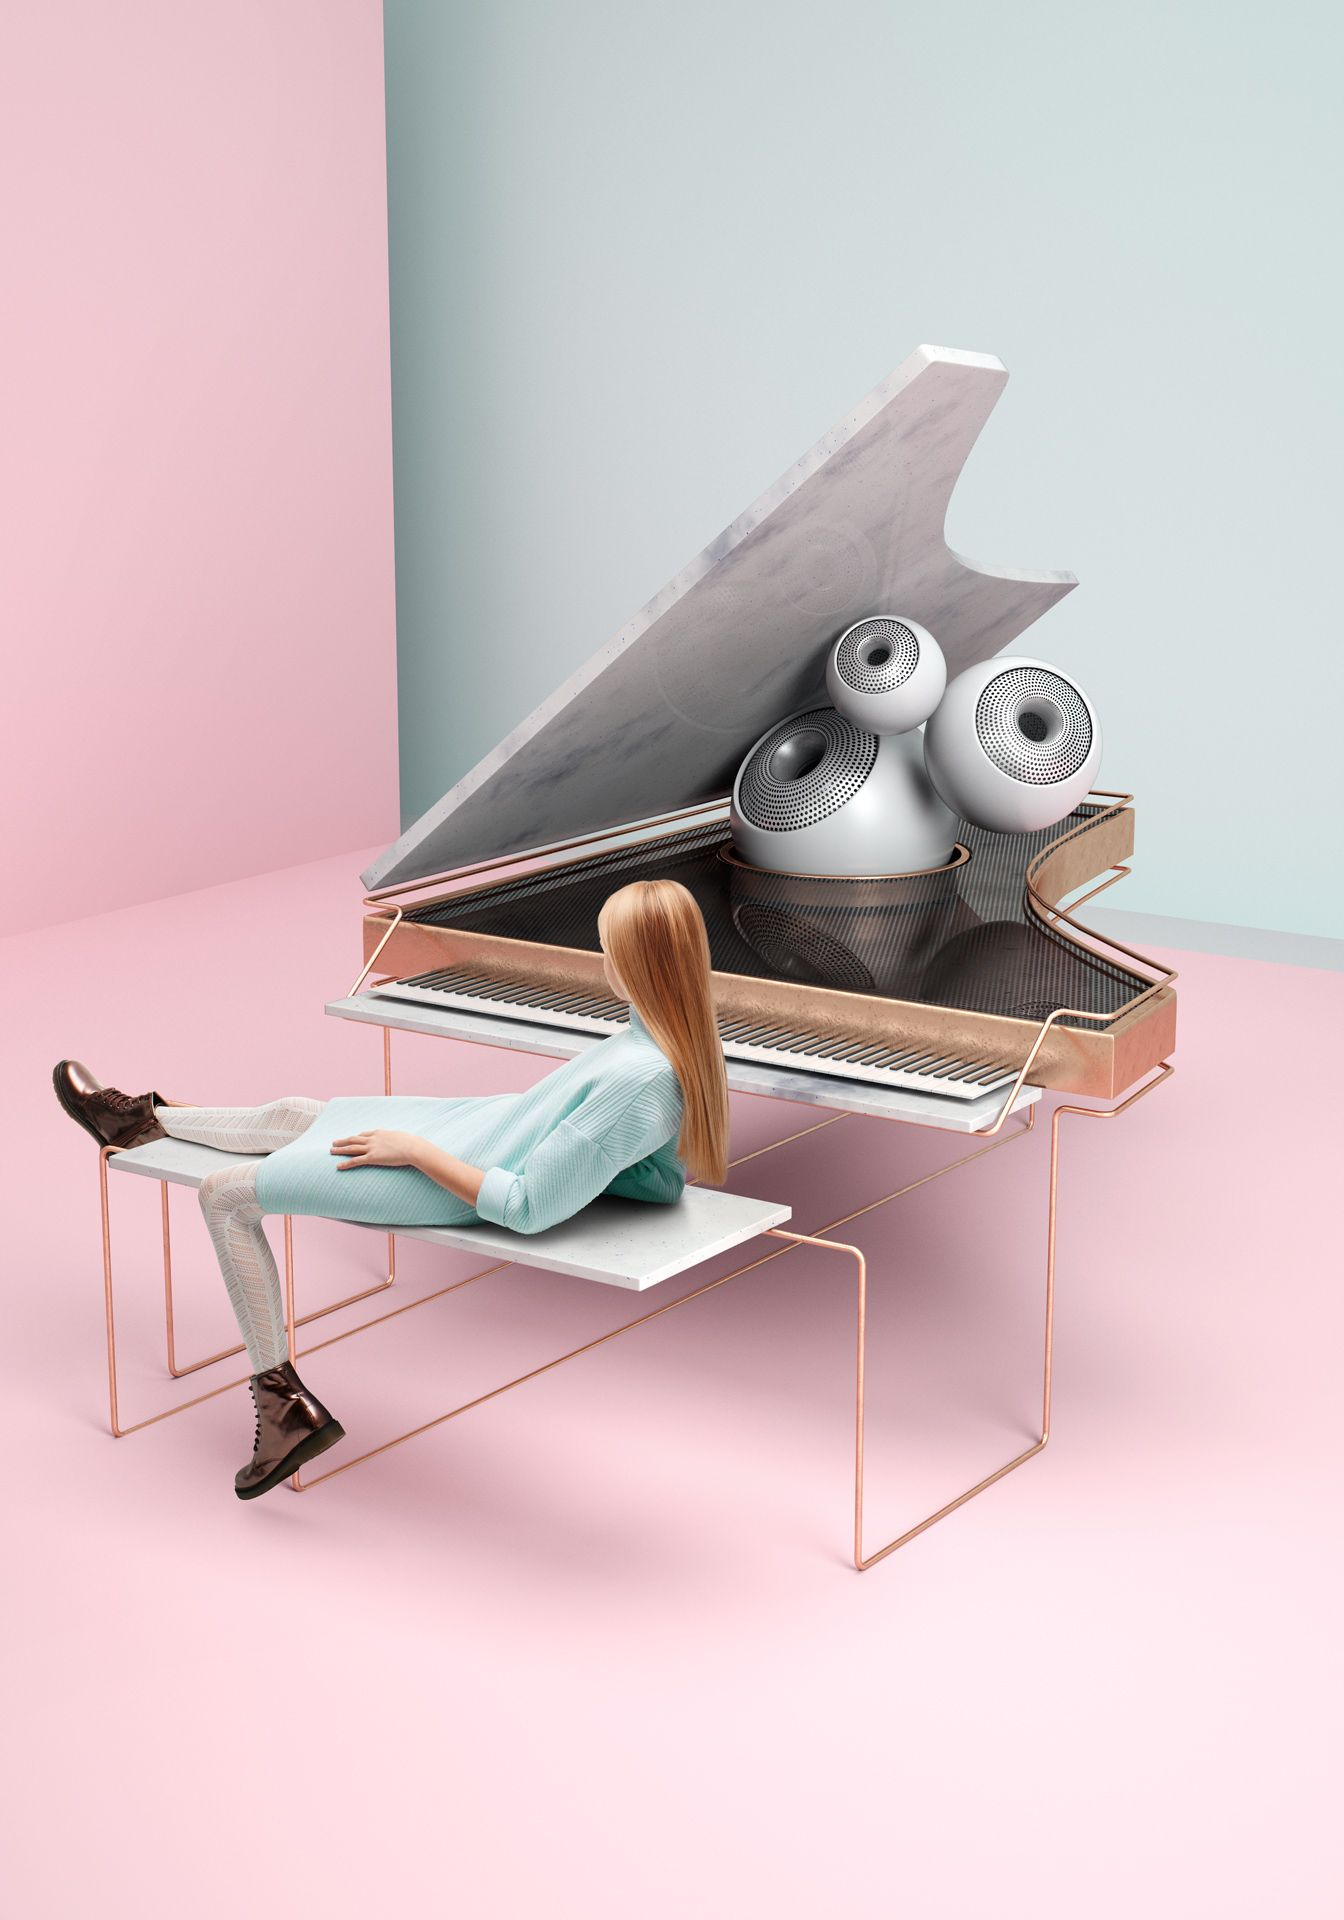 young blonde girl wearing light blue dress brown shoes laying down on bench of futuristic marble and copper piano by Simon Duhamel for creative project Bloom Maestro